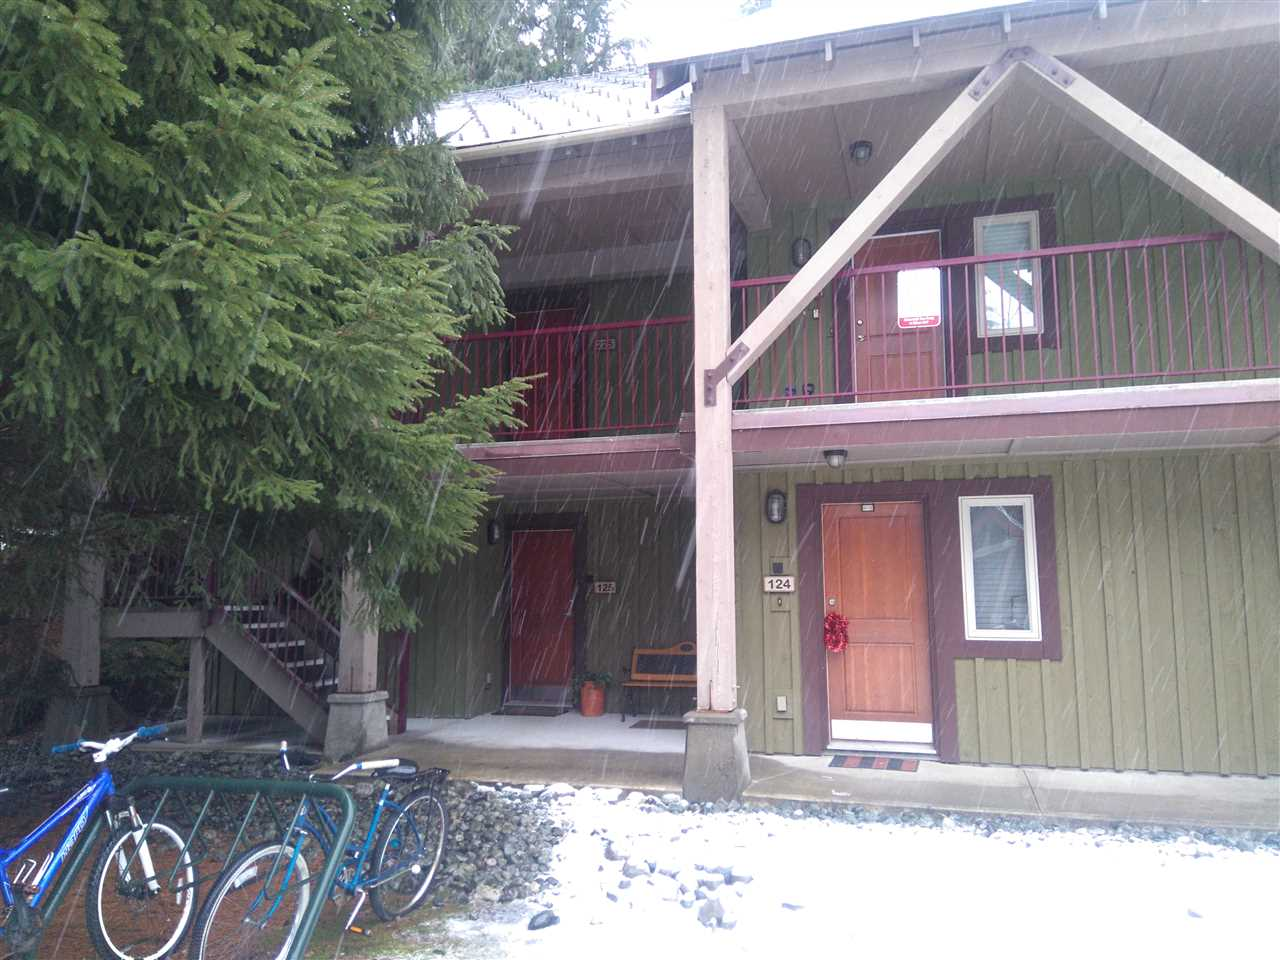 Centrally located in Alta Vista this rare 1 bedroom is a main level unit with gas fireplace and convenient parking. Minutes to the Village and Creekside services as well as Alta Lake beaches and parks.